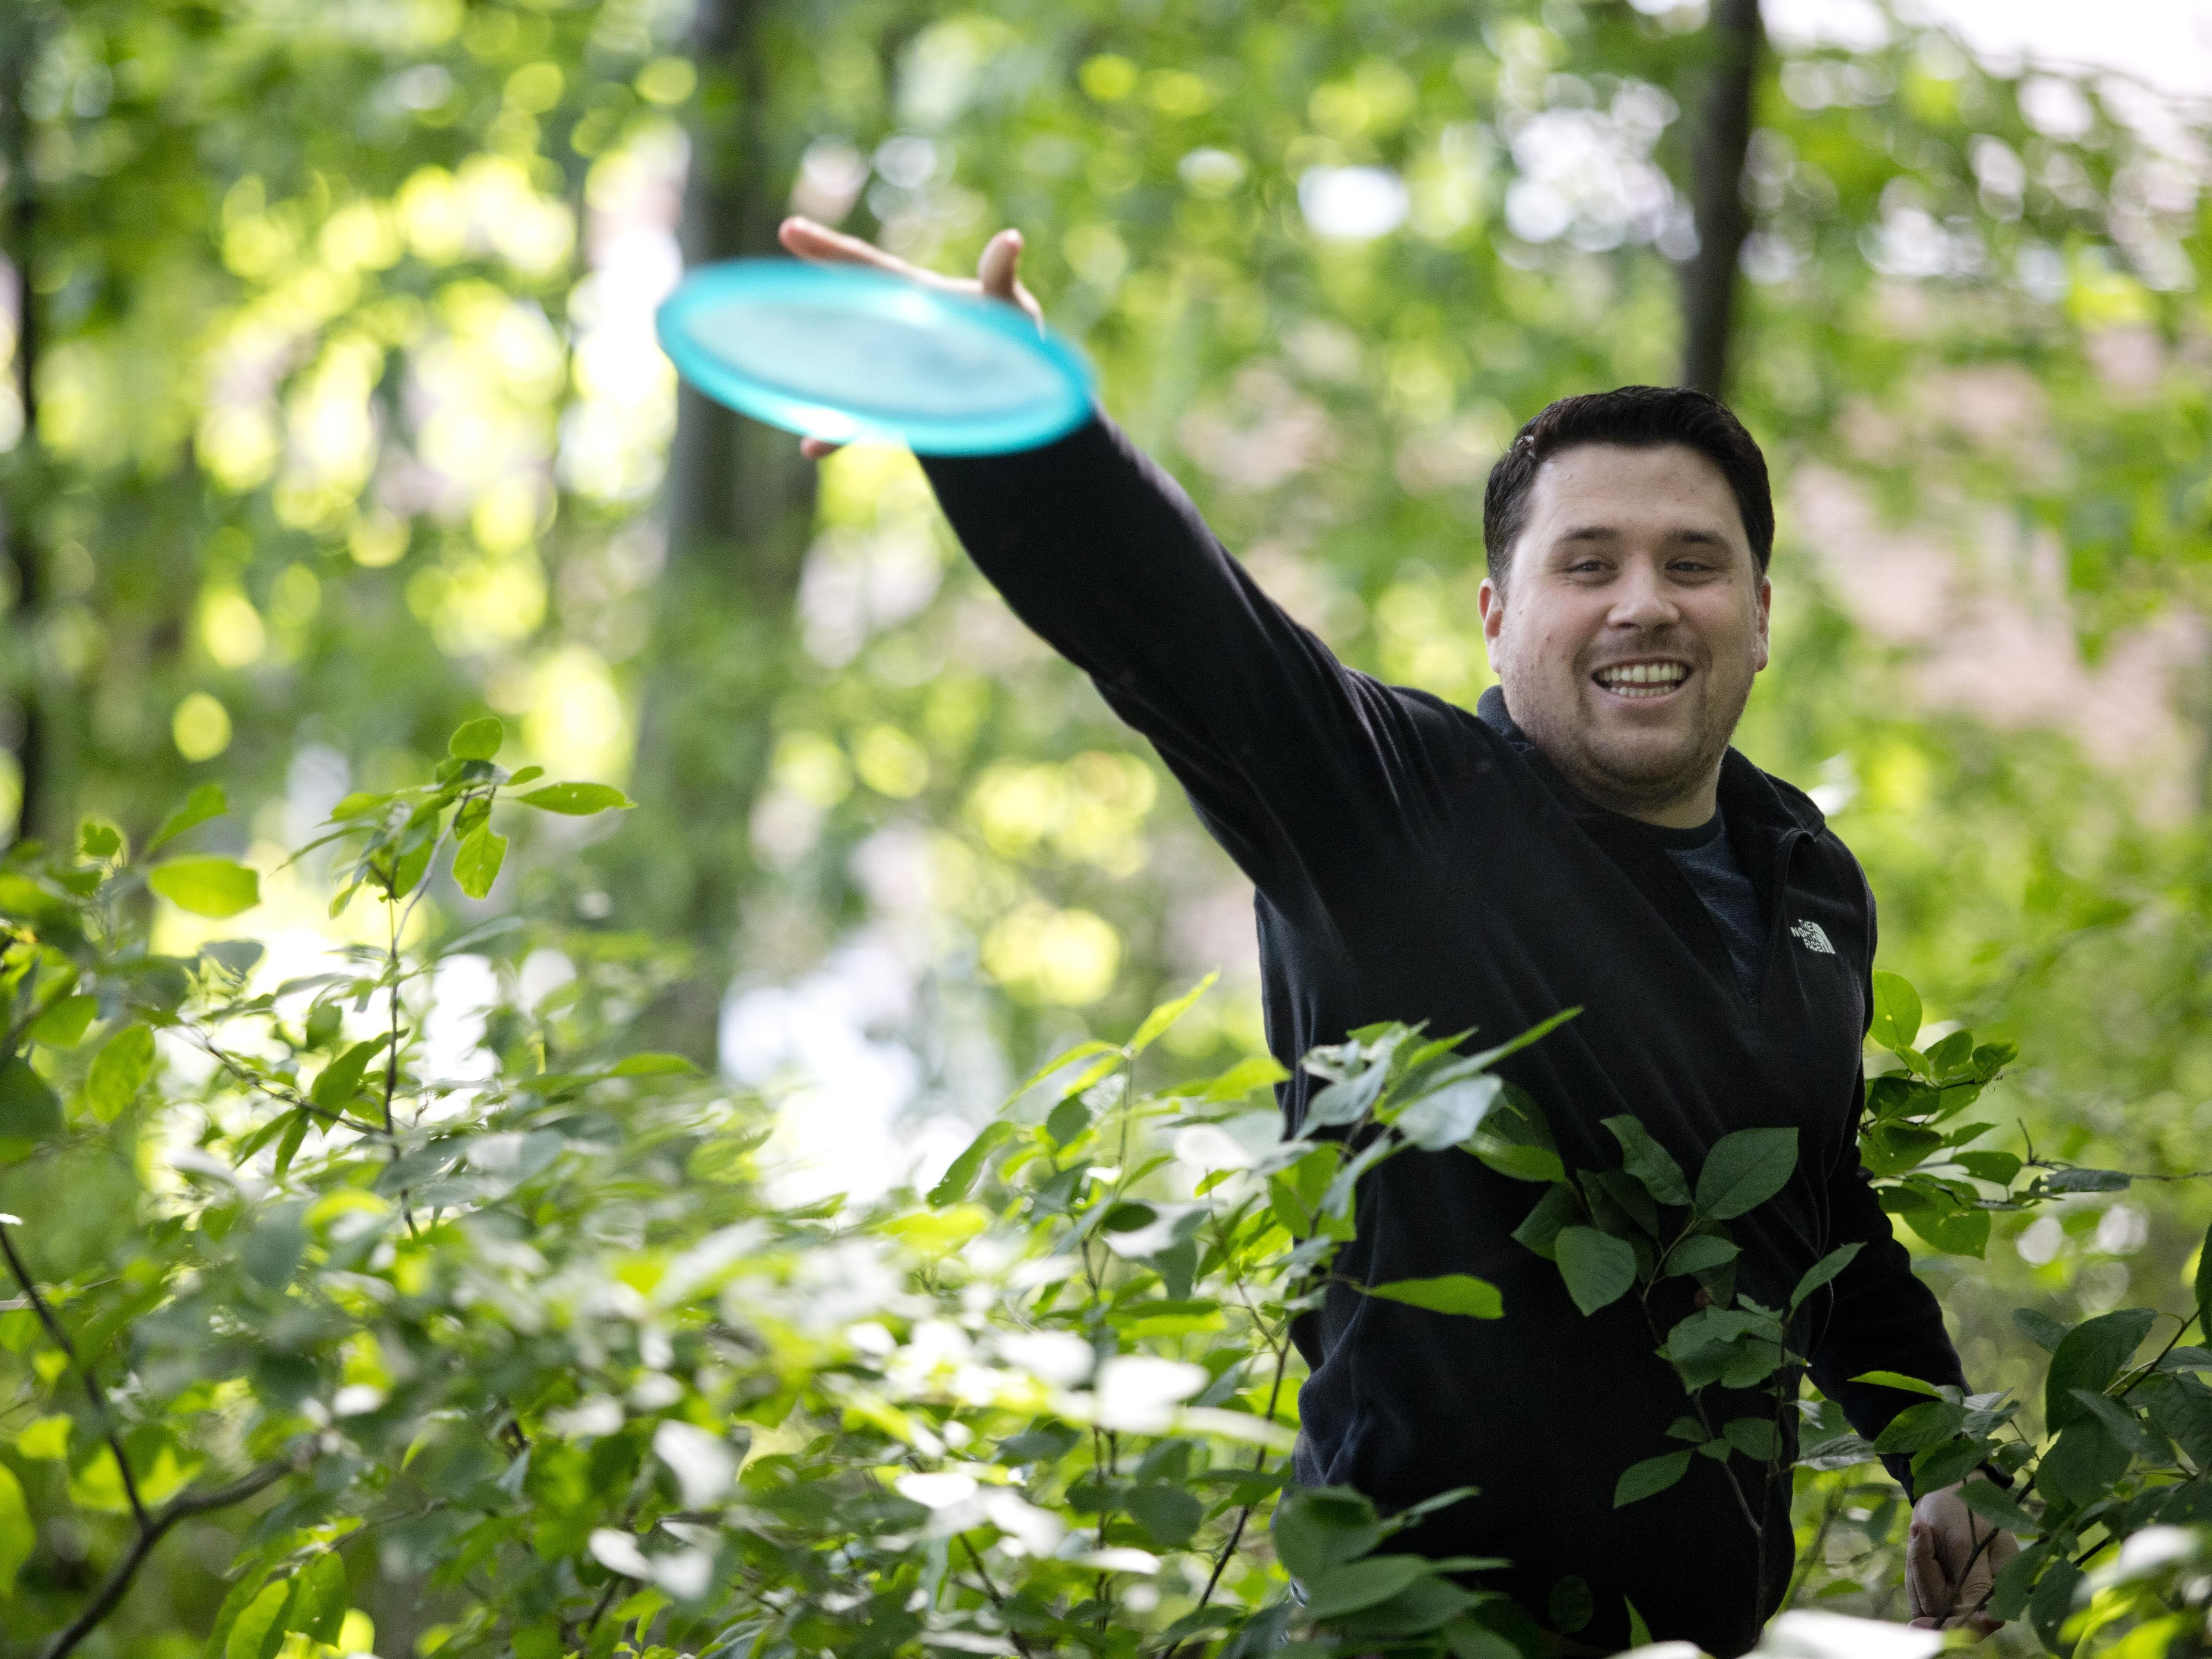 Paul Costanzo throws a disc over an area of brush while playing disc golf Friday, July 3, 2015 at Holland Woods in Port Huron.